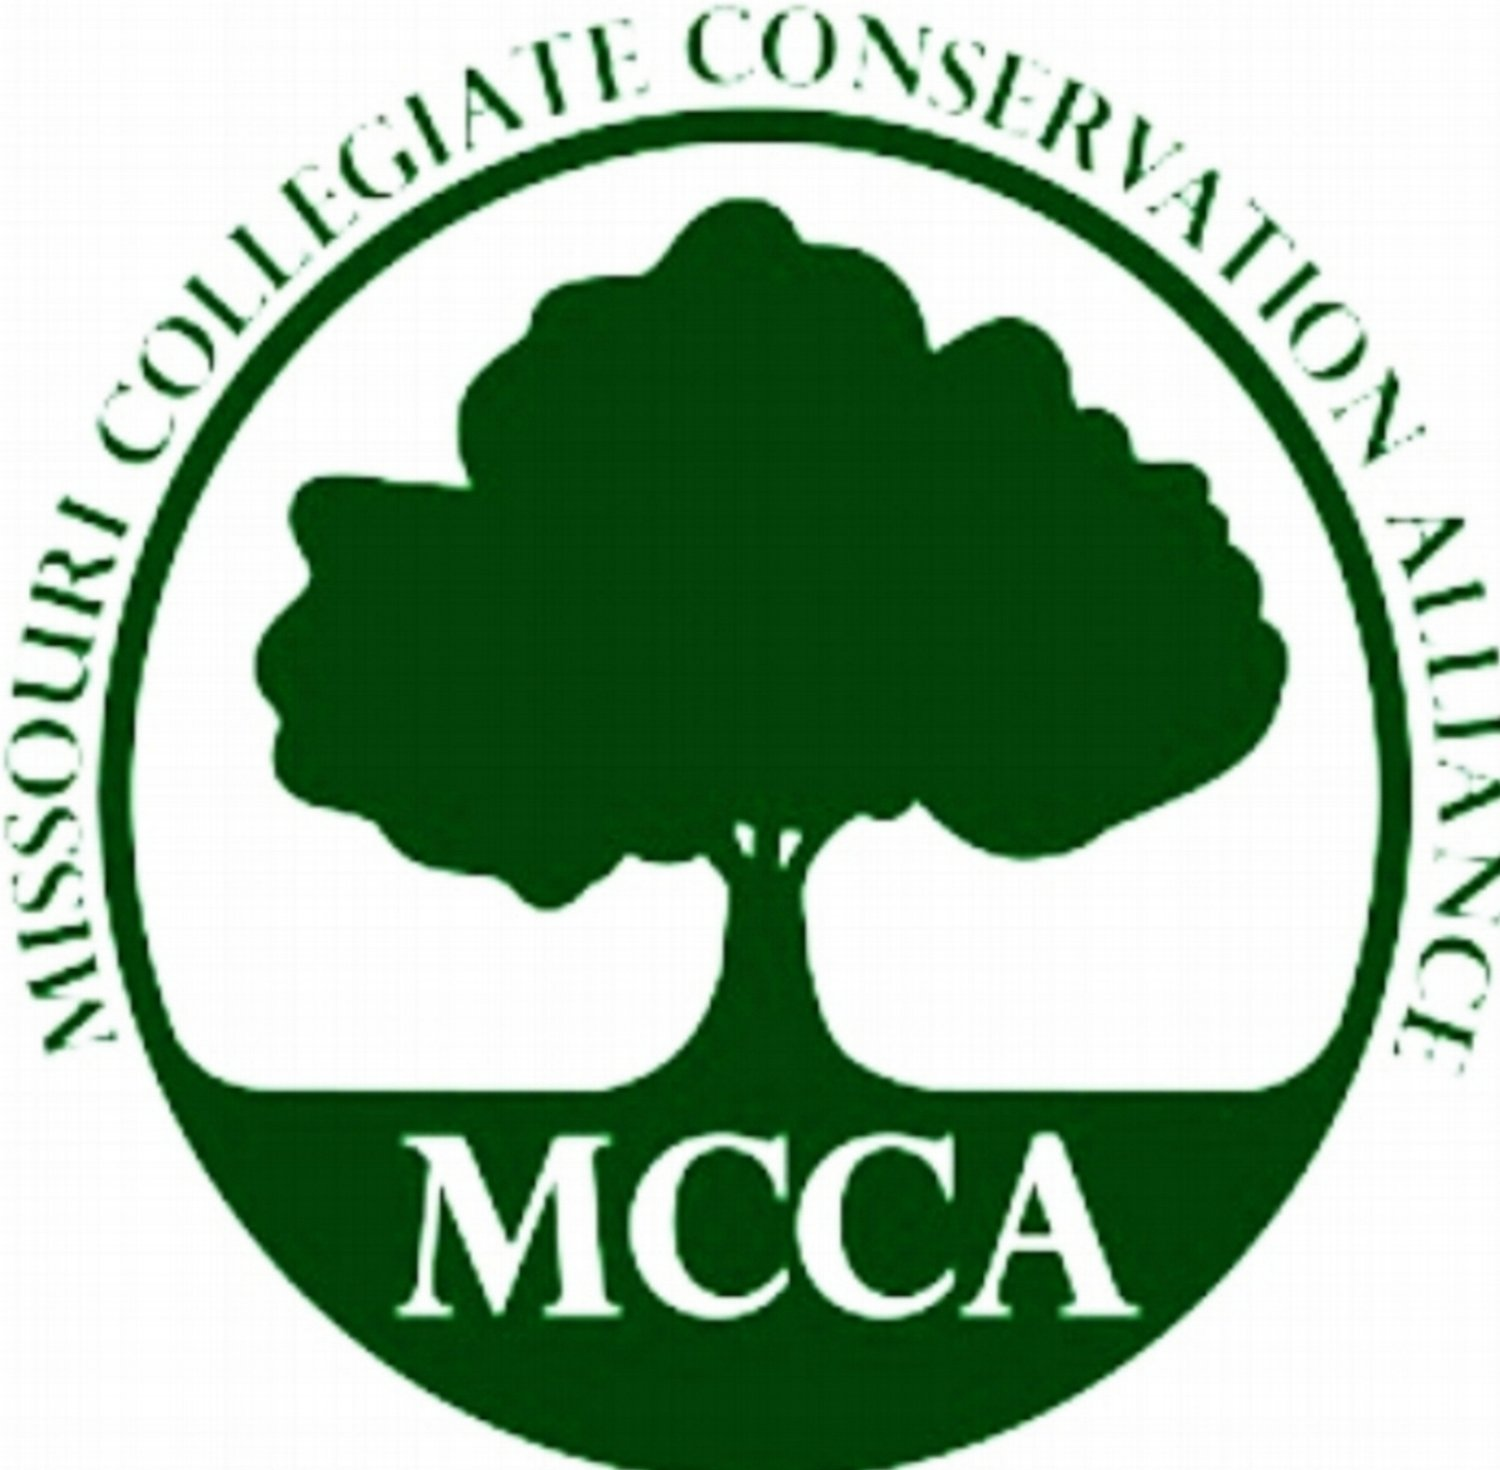 Missouri Collegiate Conservation Alliance